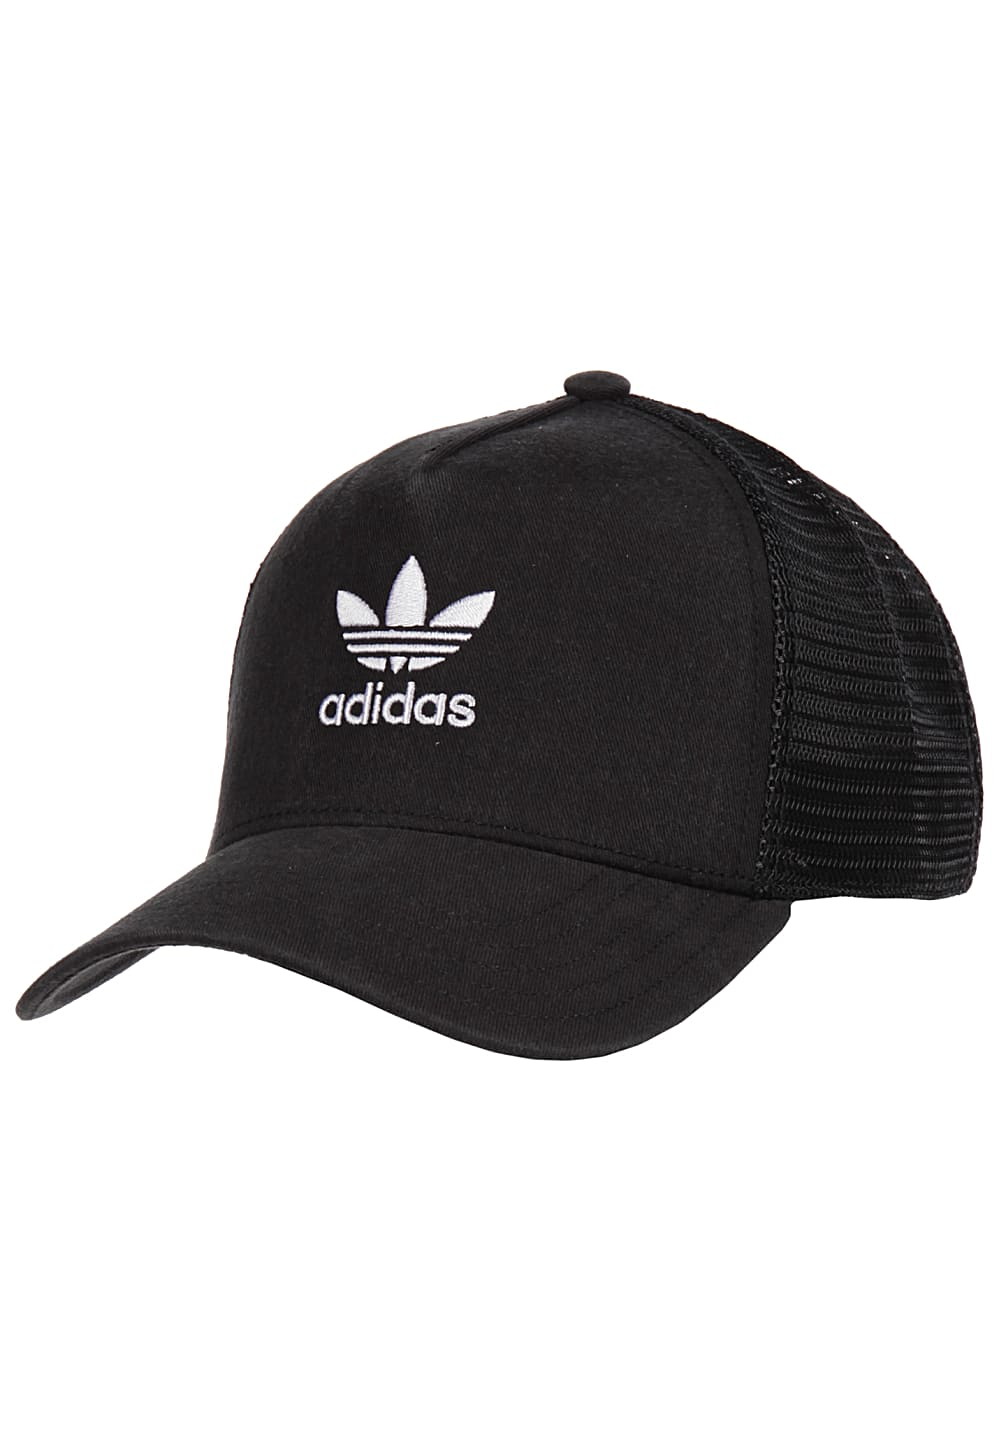 9212133290e2c ADIDAS ORIGINALS Trefoil - Trucker Cap for Men - Black - Planet Sports